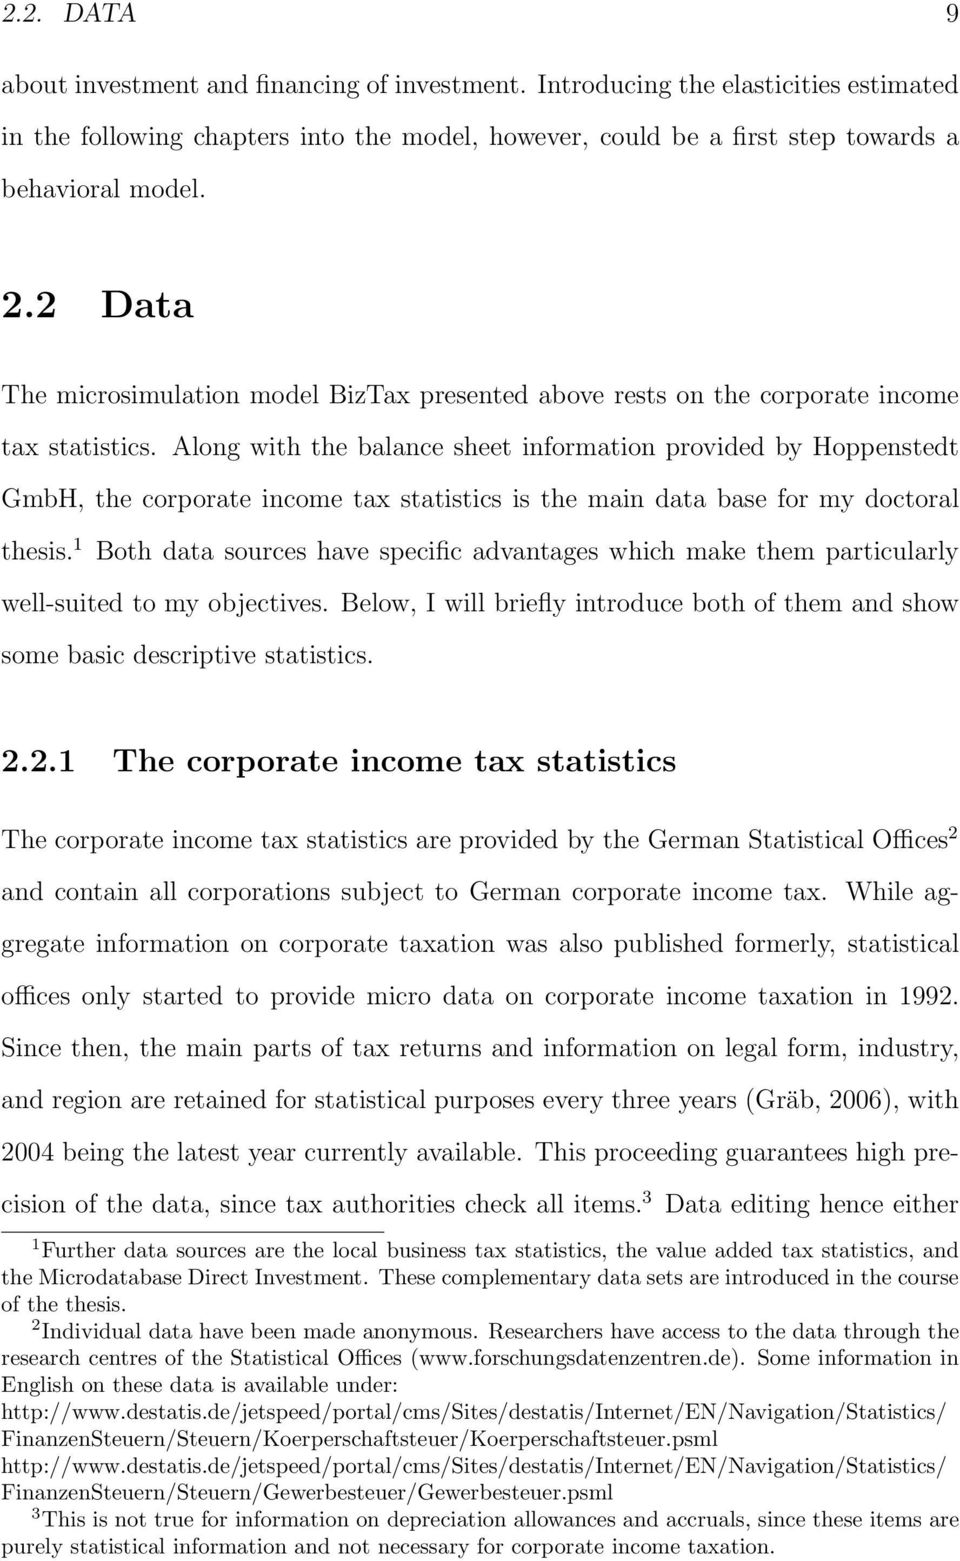 Along with the balance sheet information provided by Hoppenstedt GmbH, the corporate income tax statistics is the main data base for my doctoral thesis.